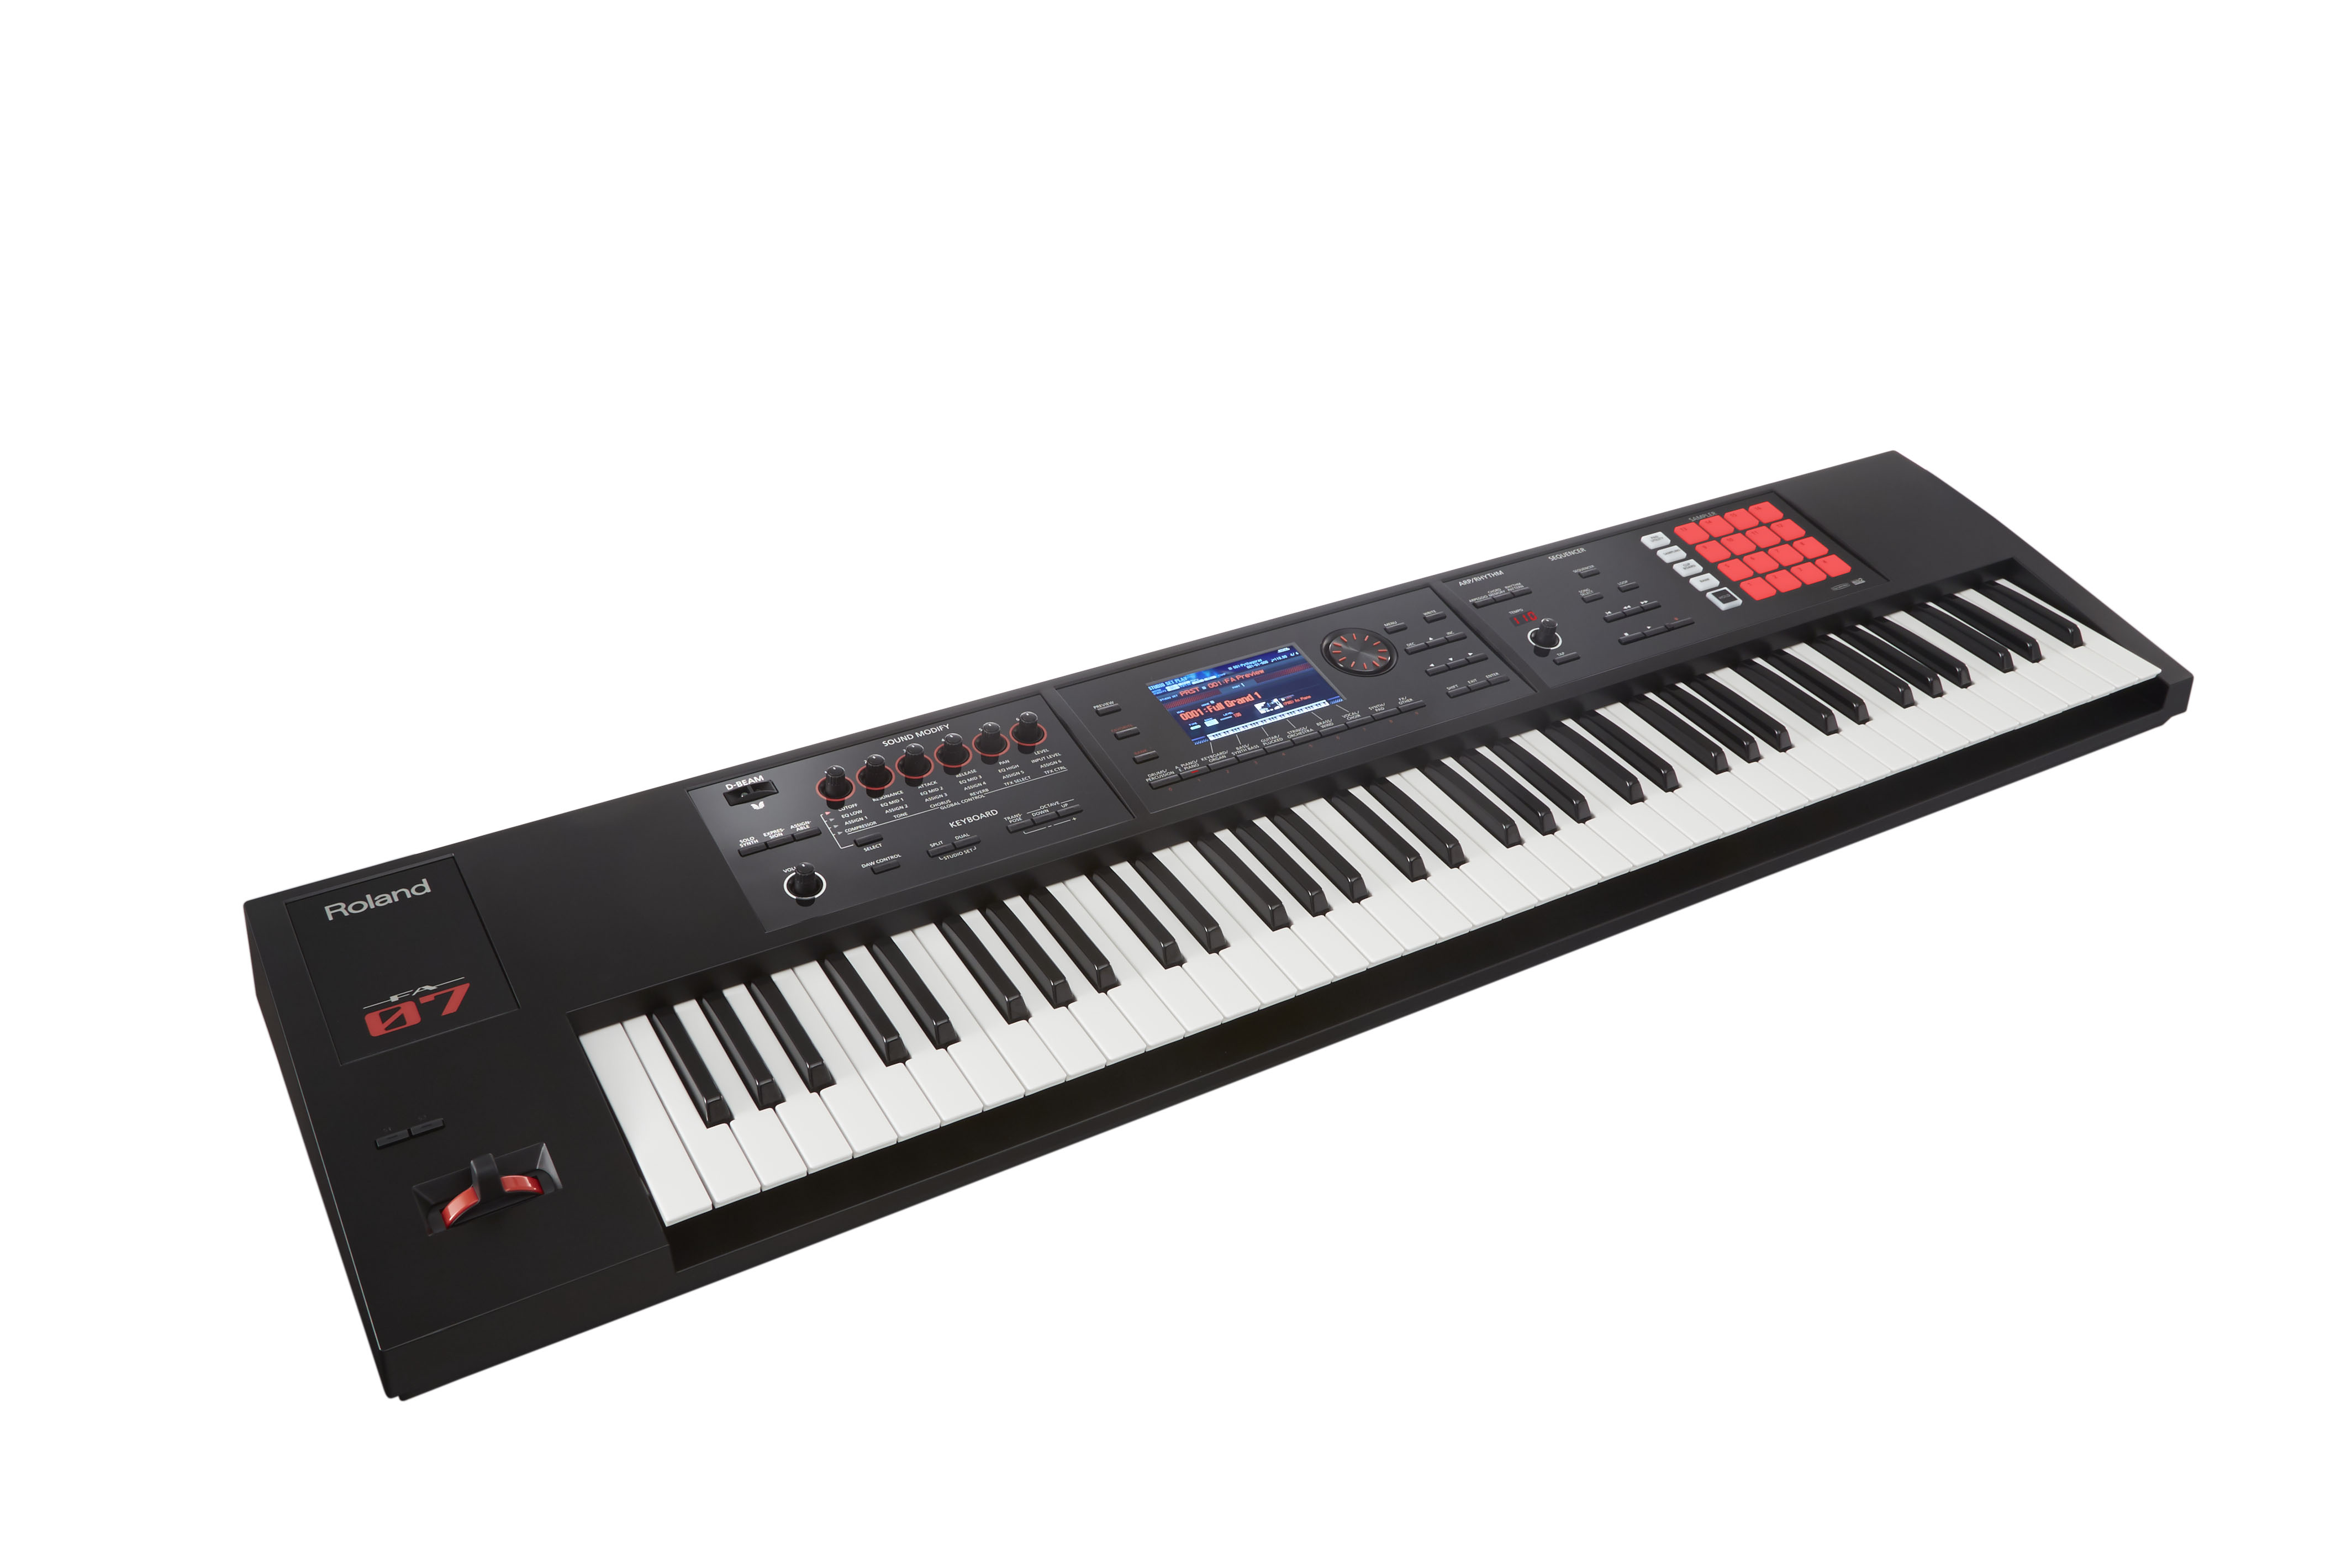 Claviers & Pianos - WORKSTATIONS - ROLAND - FA-07 - Royez Musik